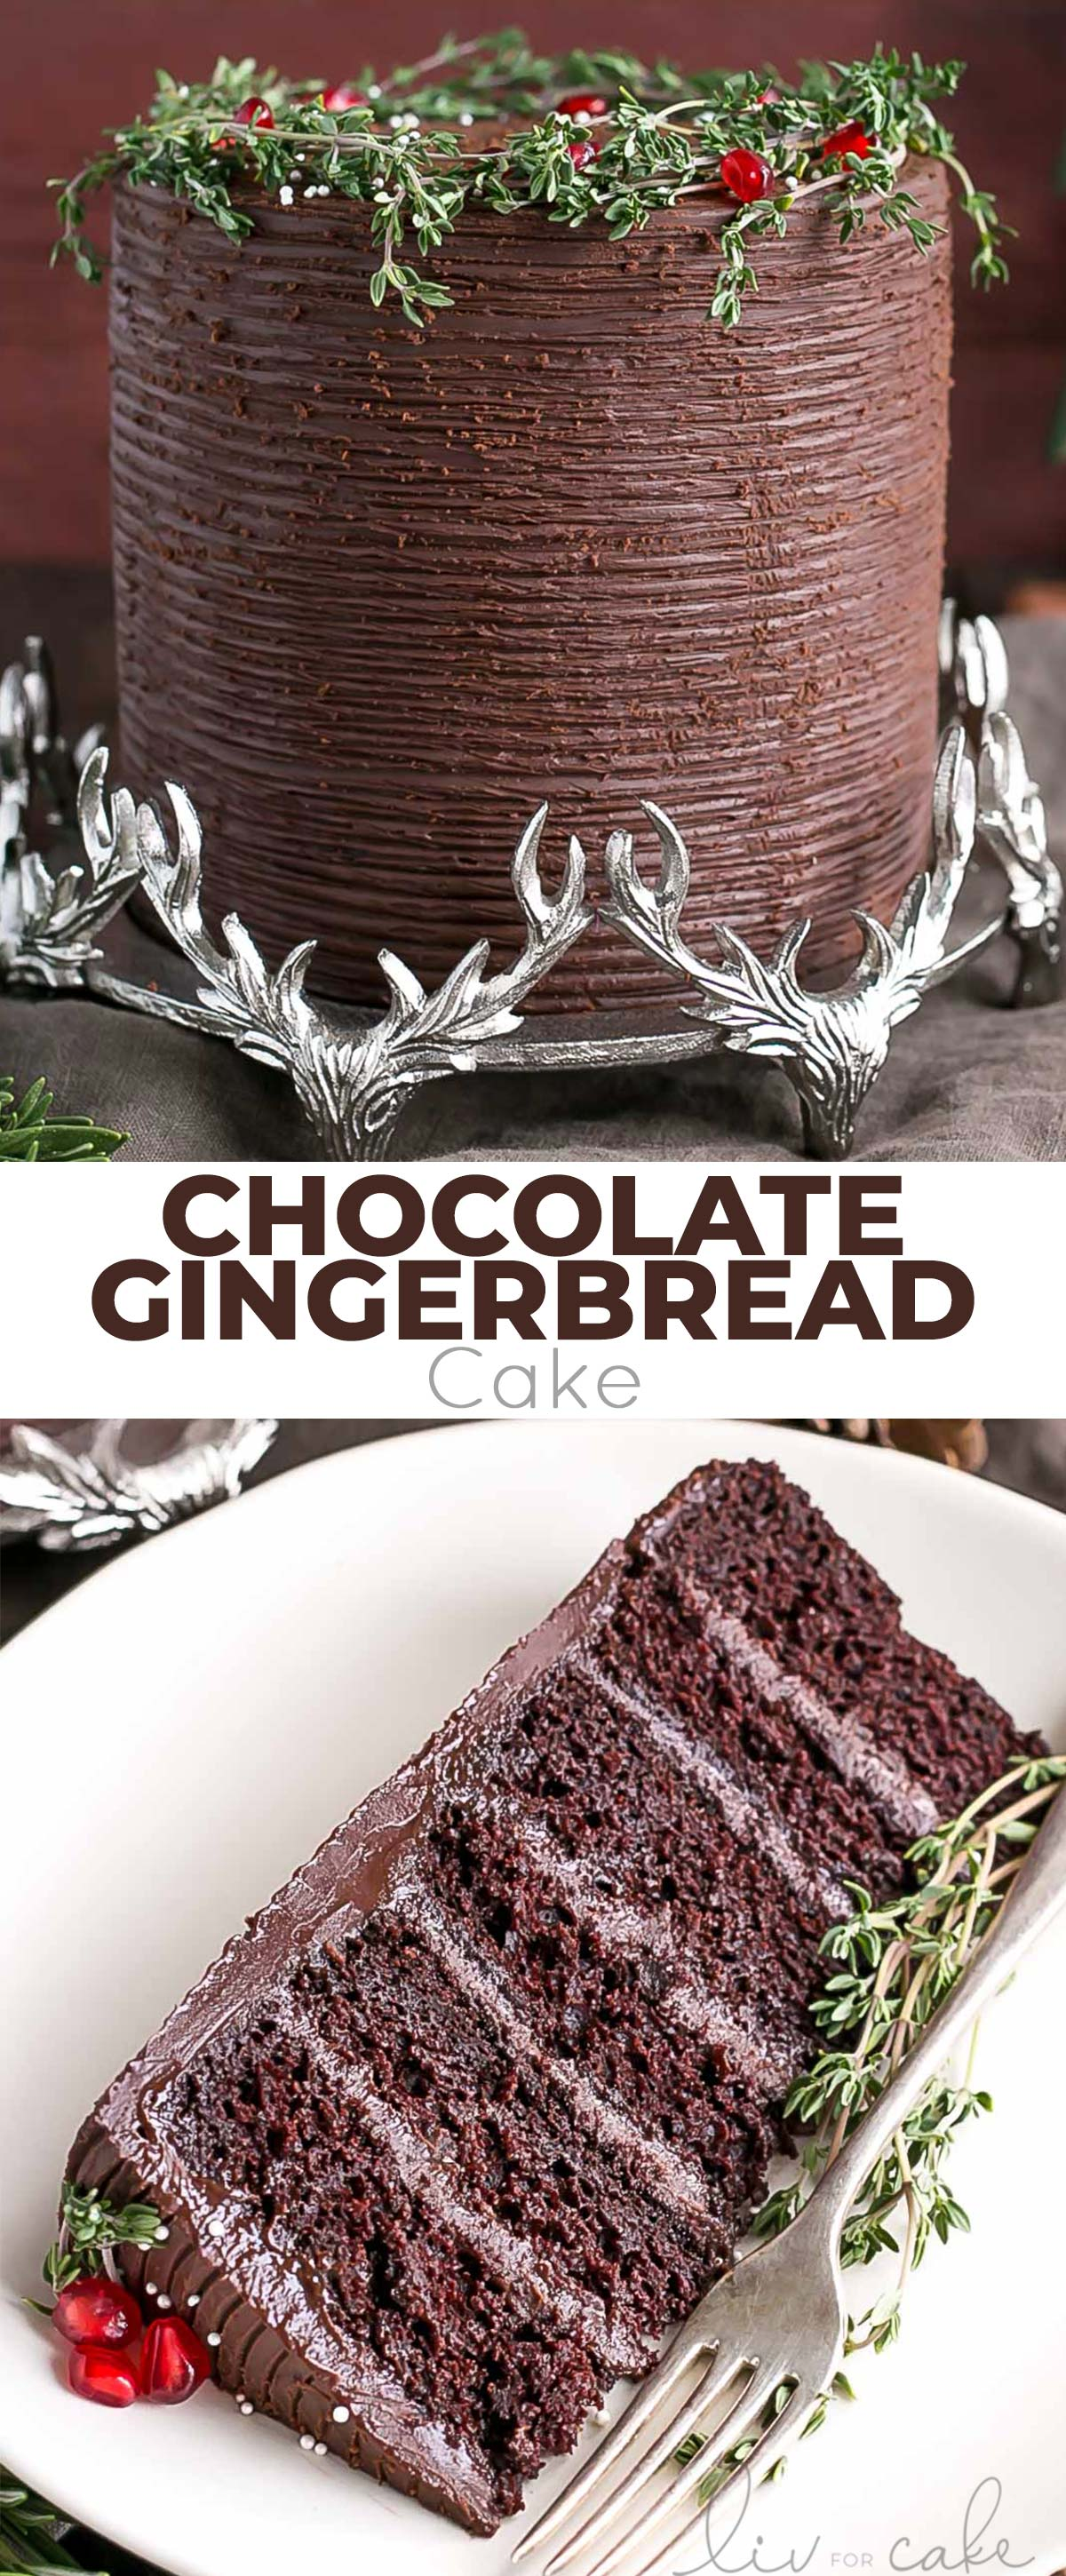 Chocolate gingerbread cake photo collage.